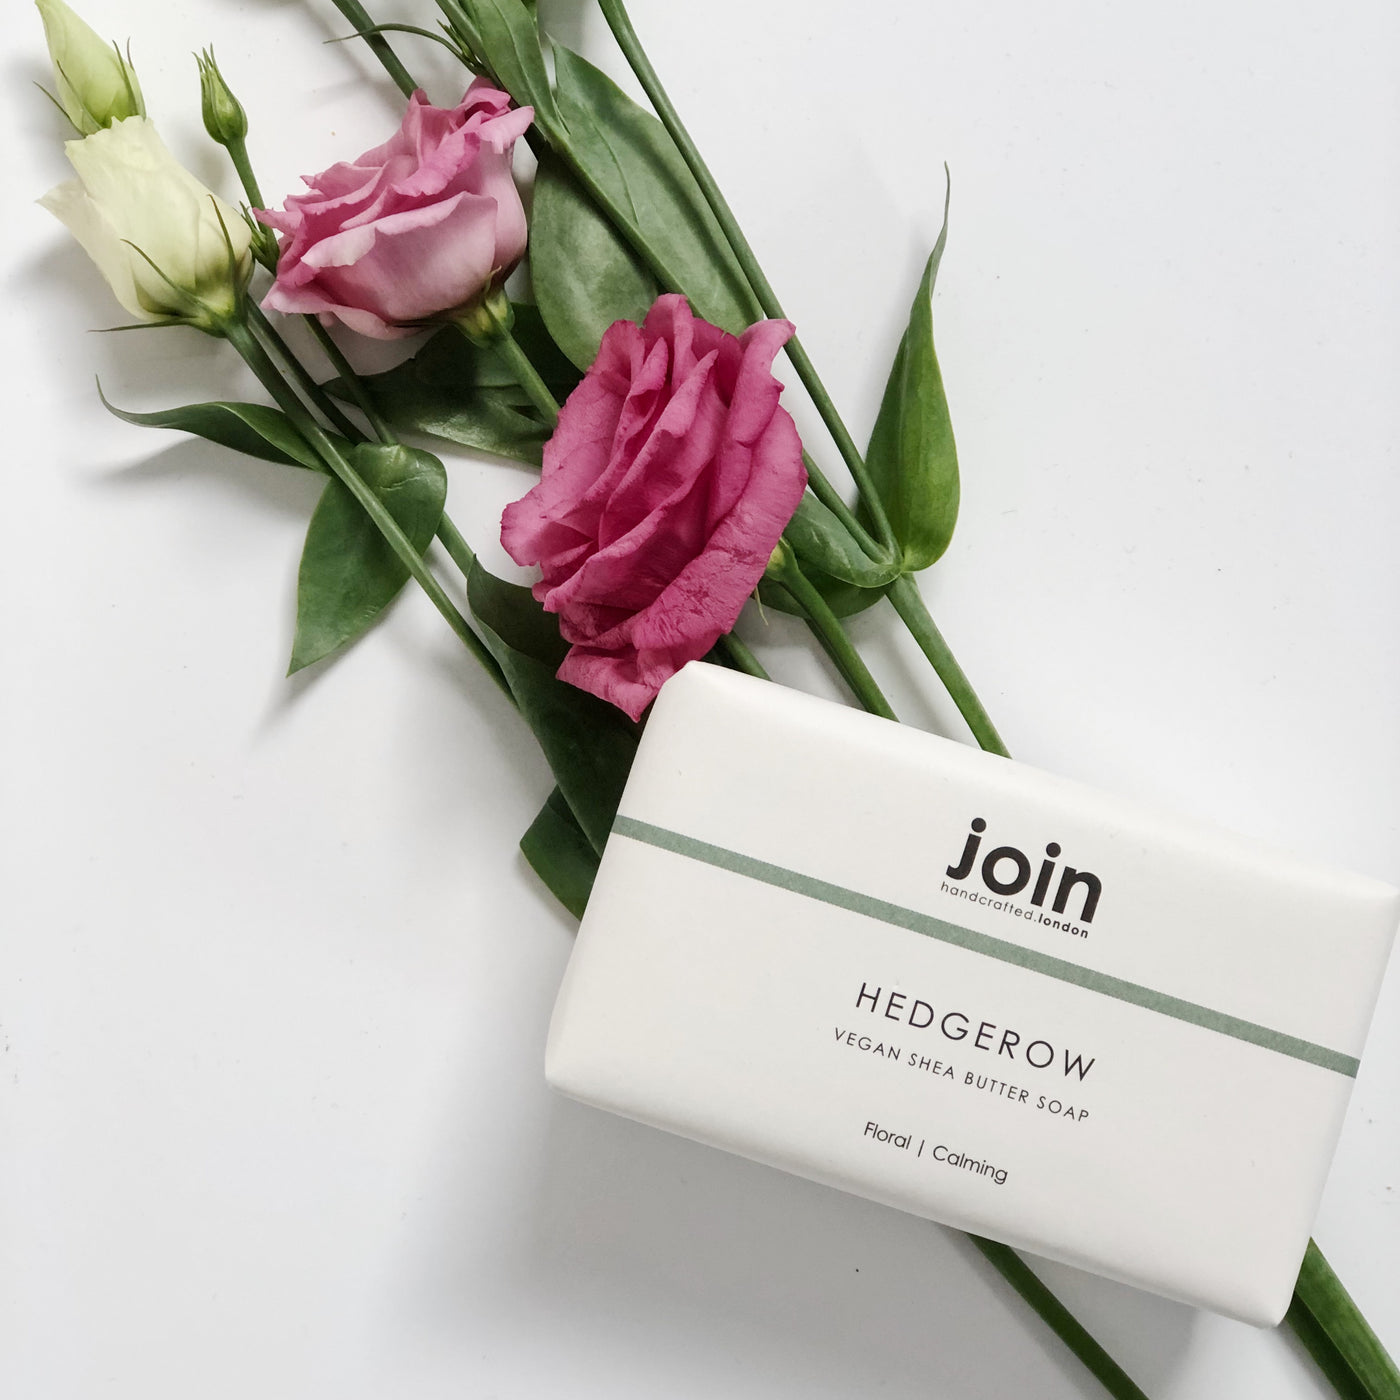 Join Shea Butter Soap - Hedgerow